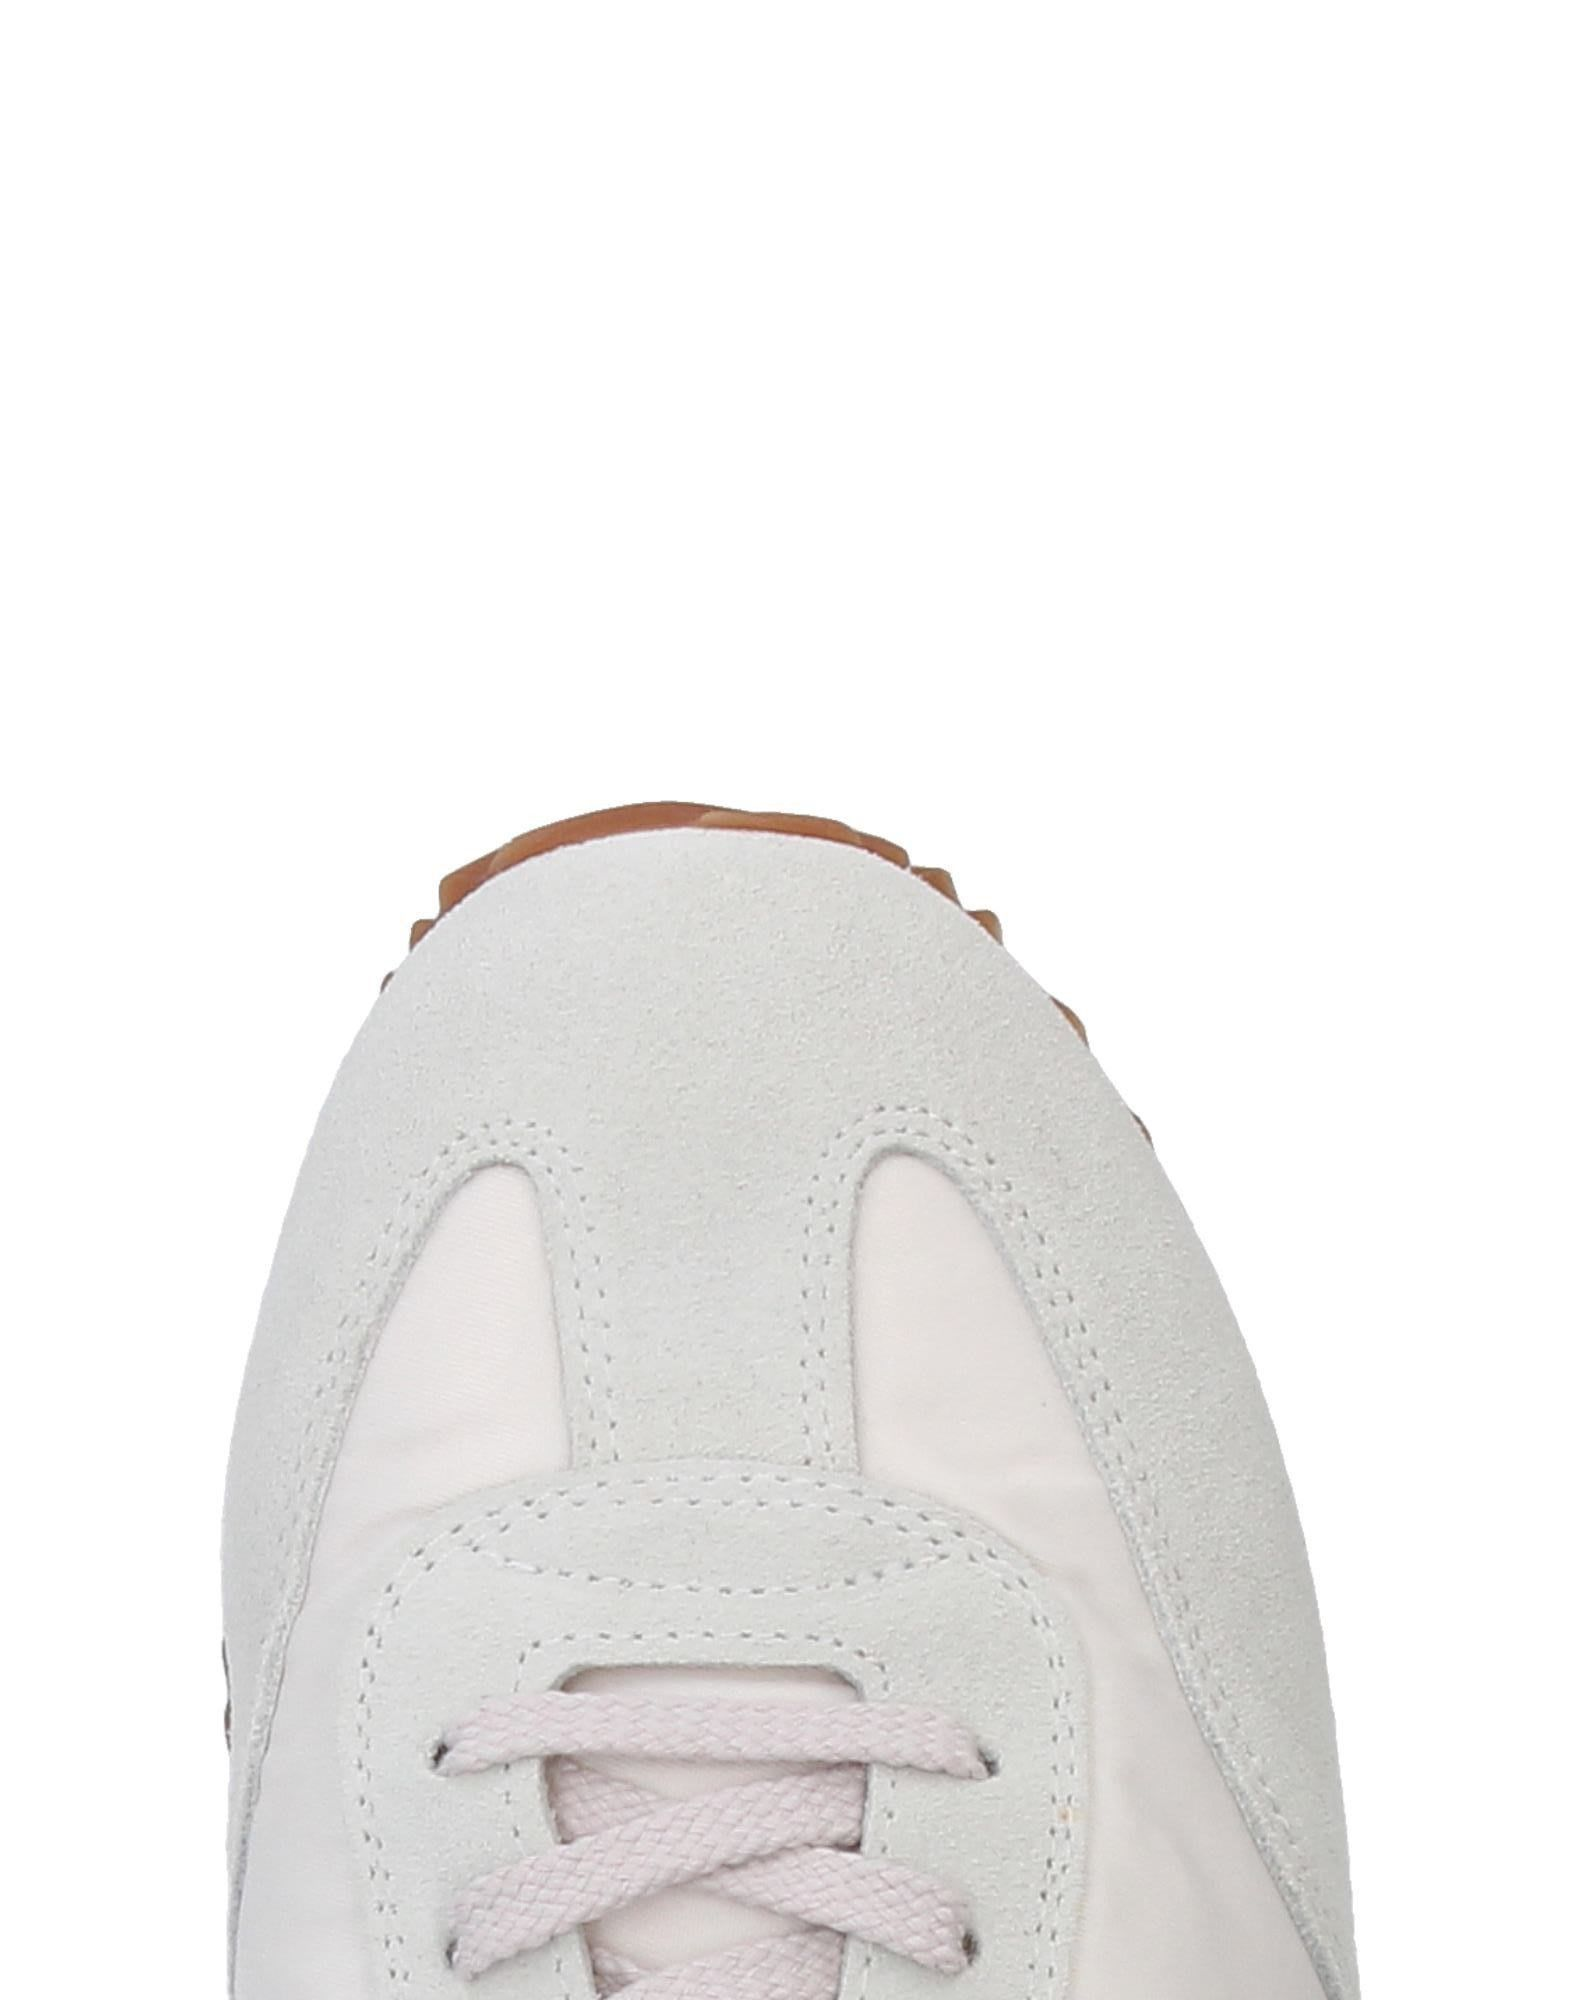 Sneakers Valsport Femme - Sneakers Valsport sur